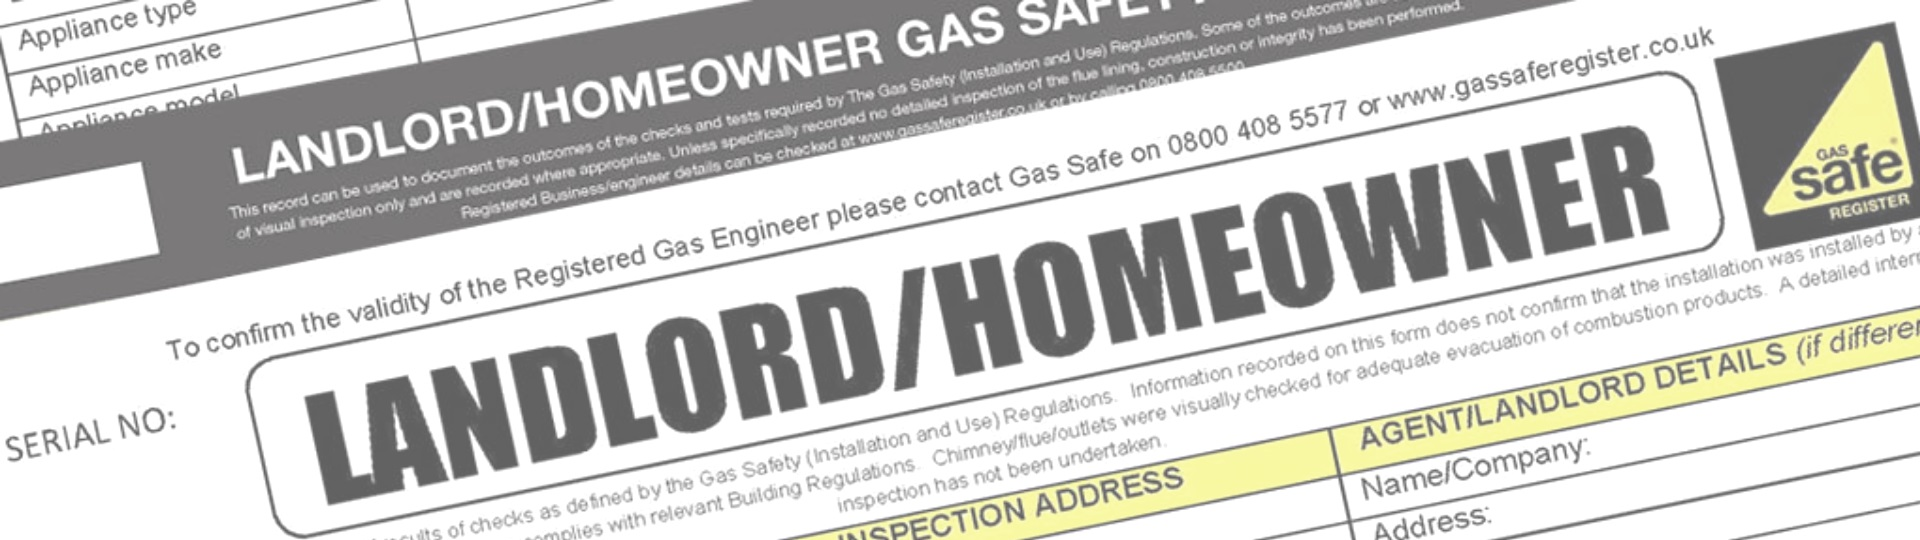 Gas Saftey Certificates Rose Green